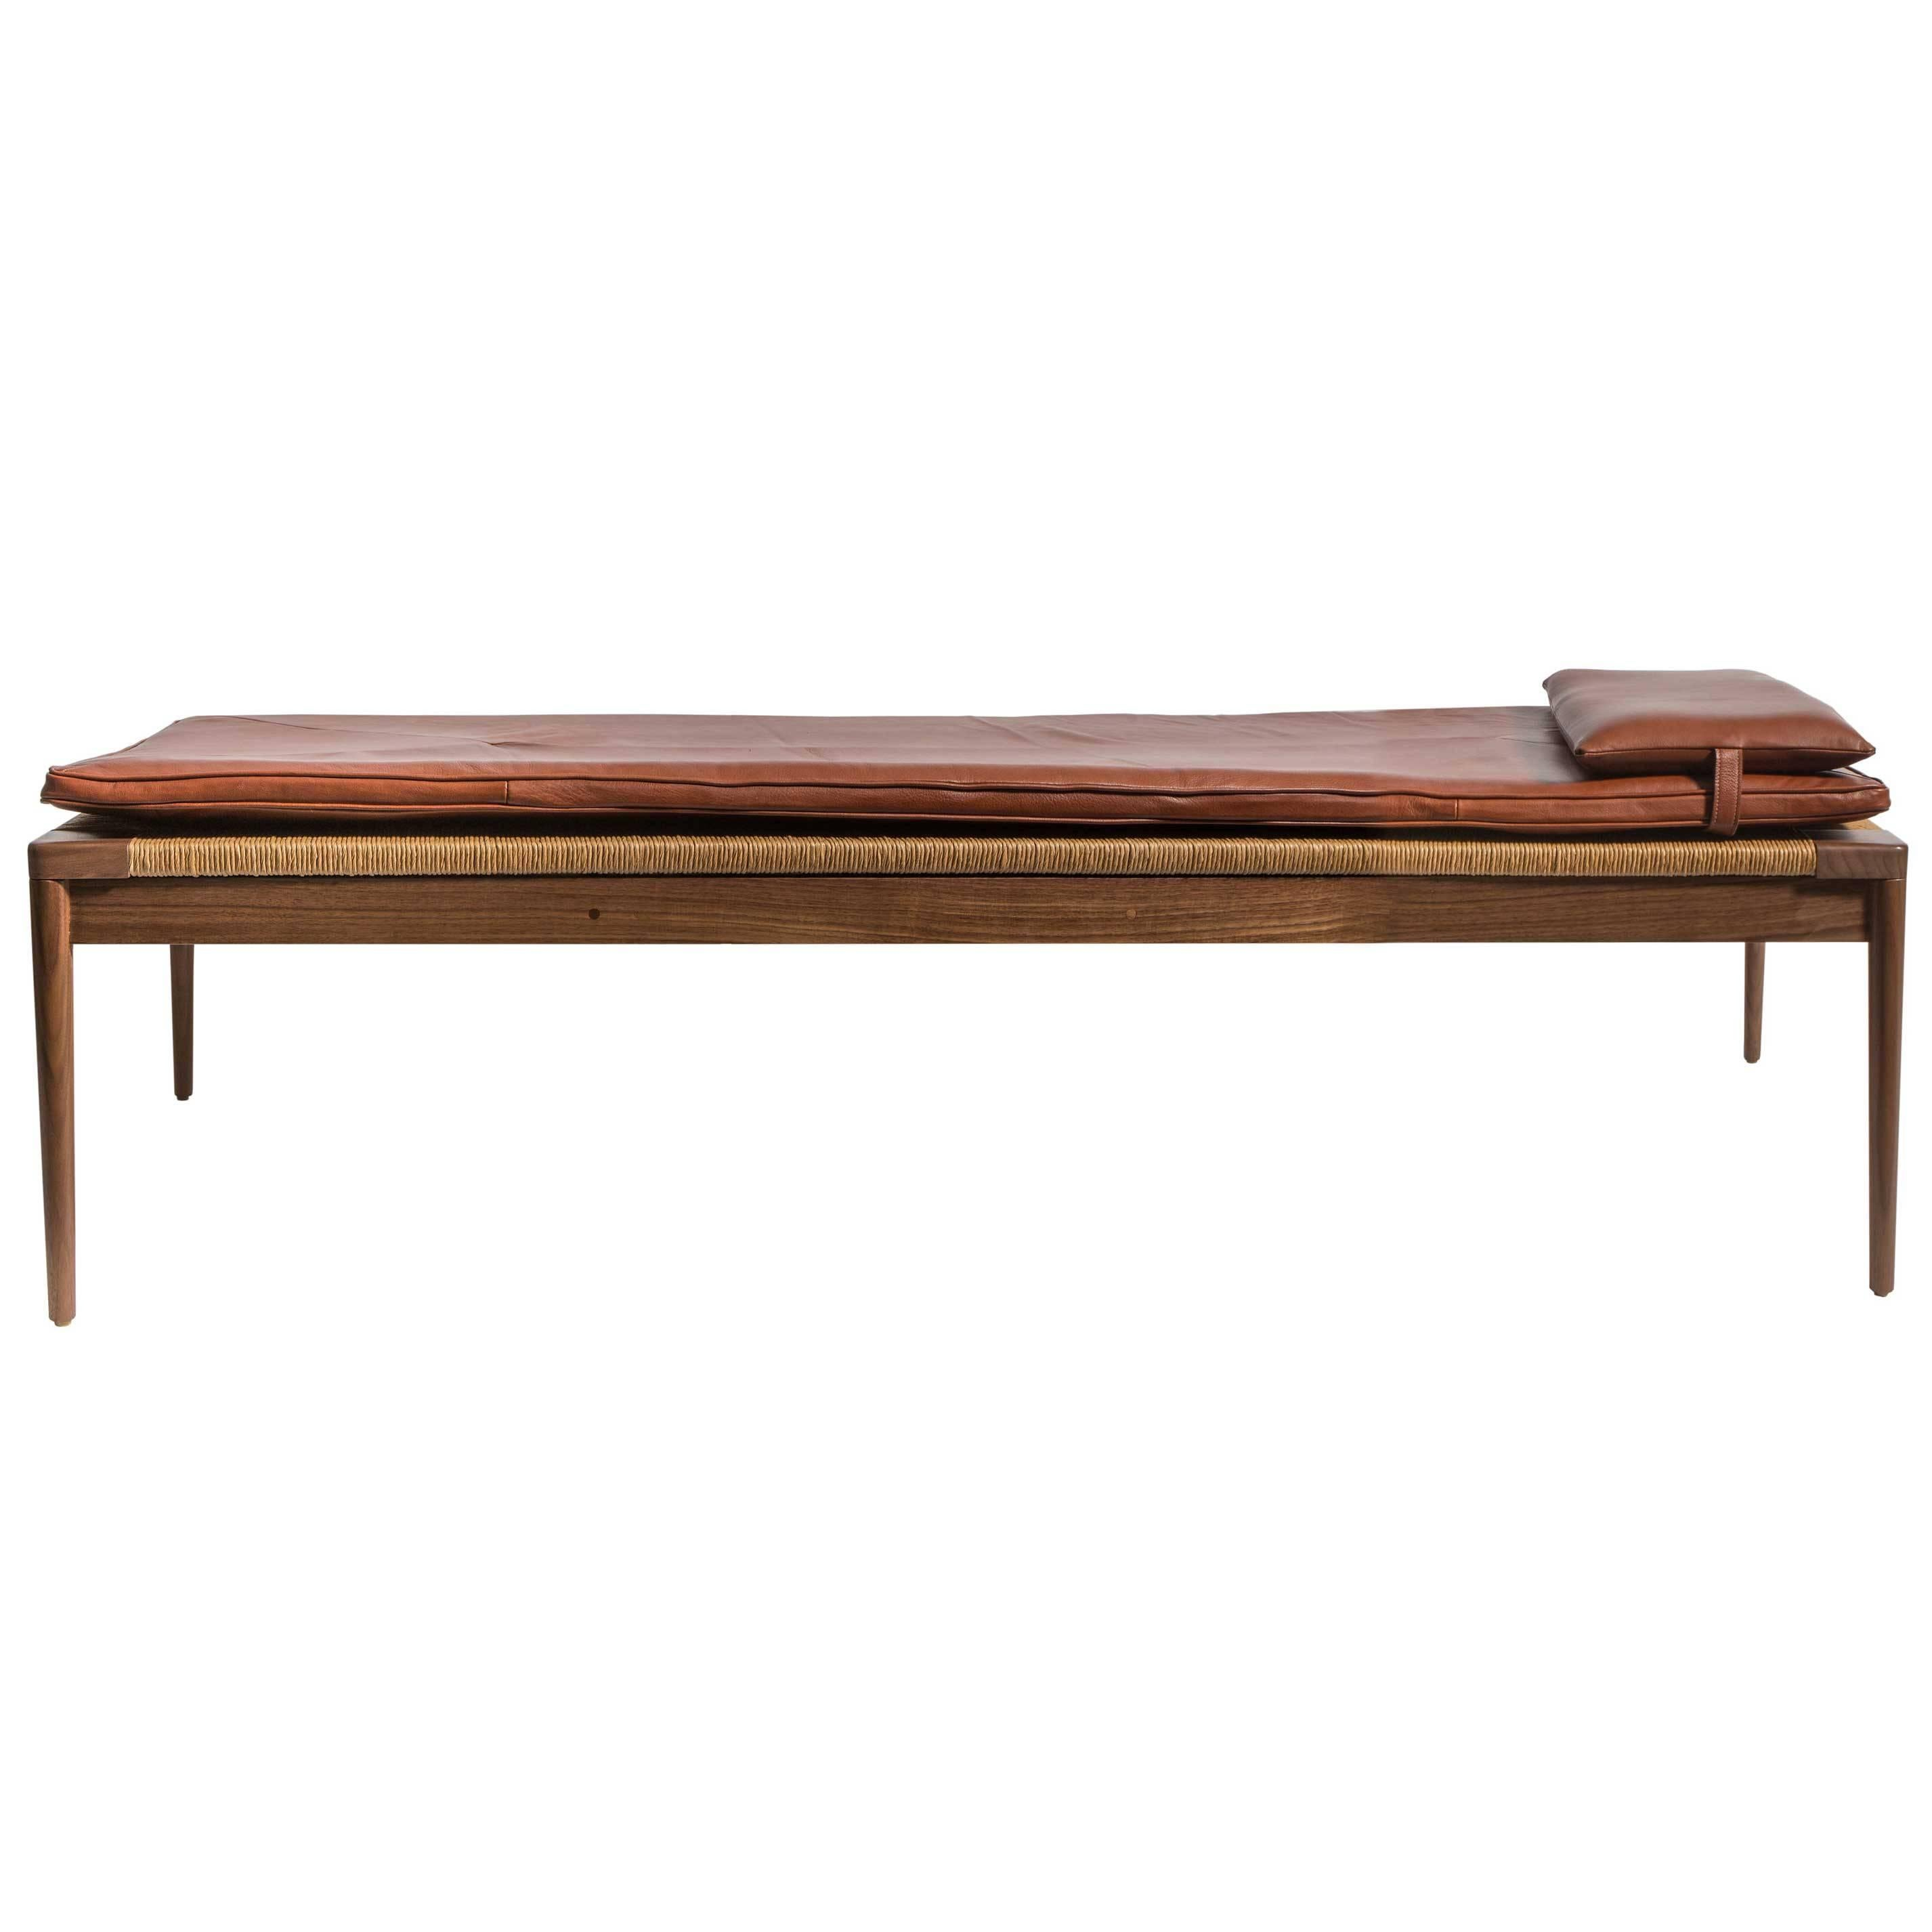 Rush and Walnut Daybed by Smilow Furniture